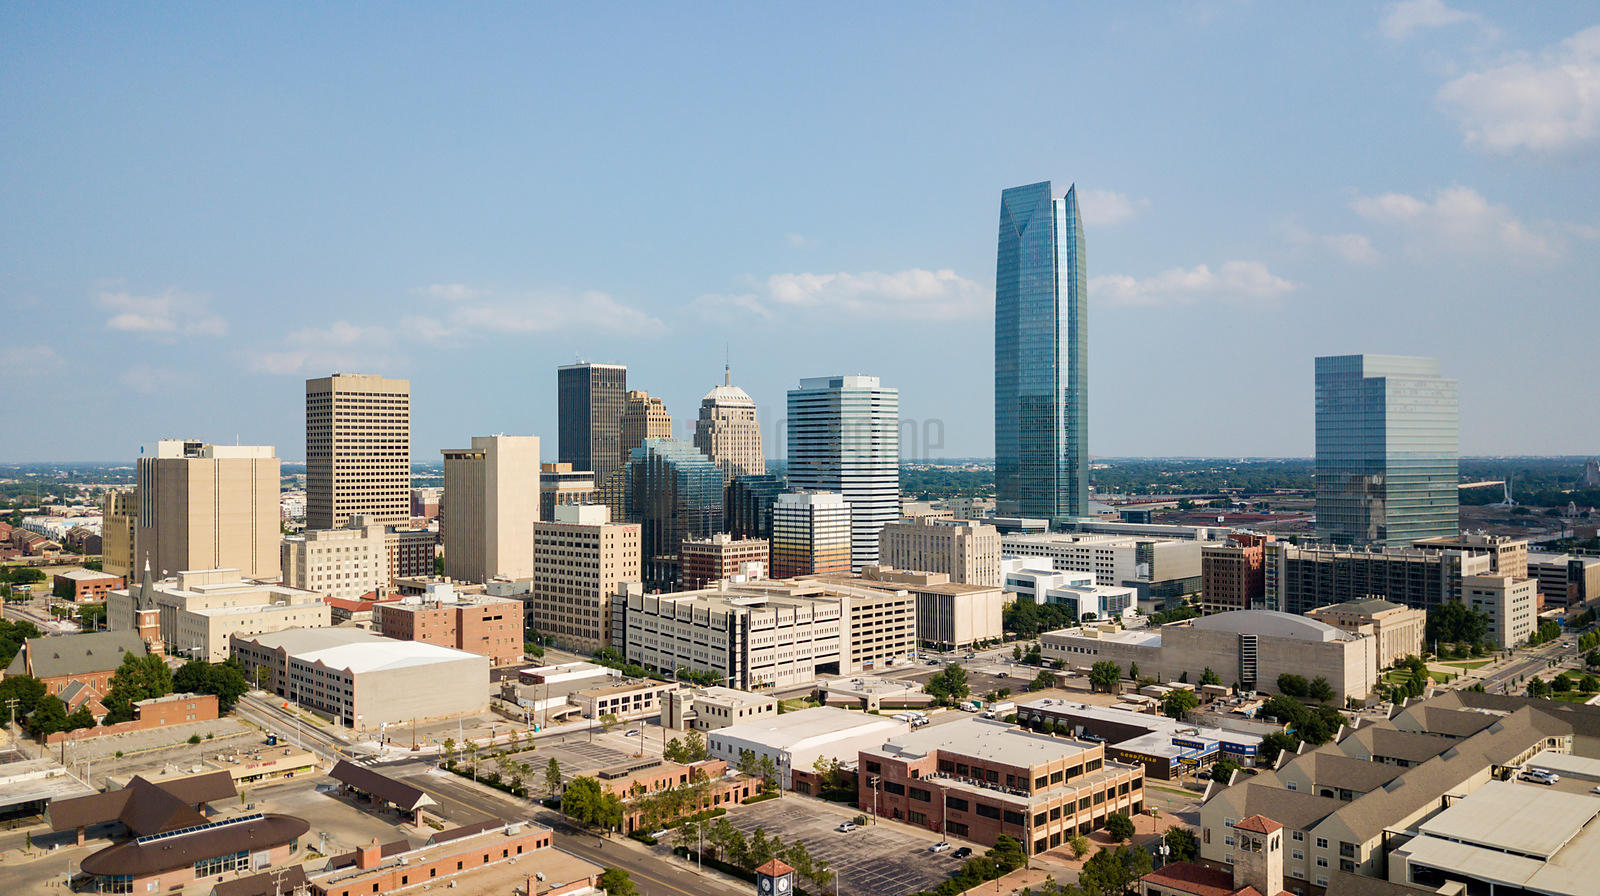 Elevated View of the Oklahoma City Skyline